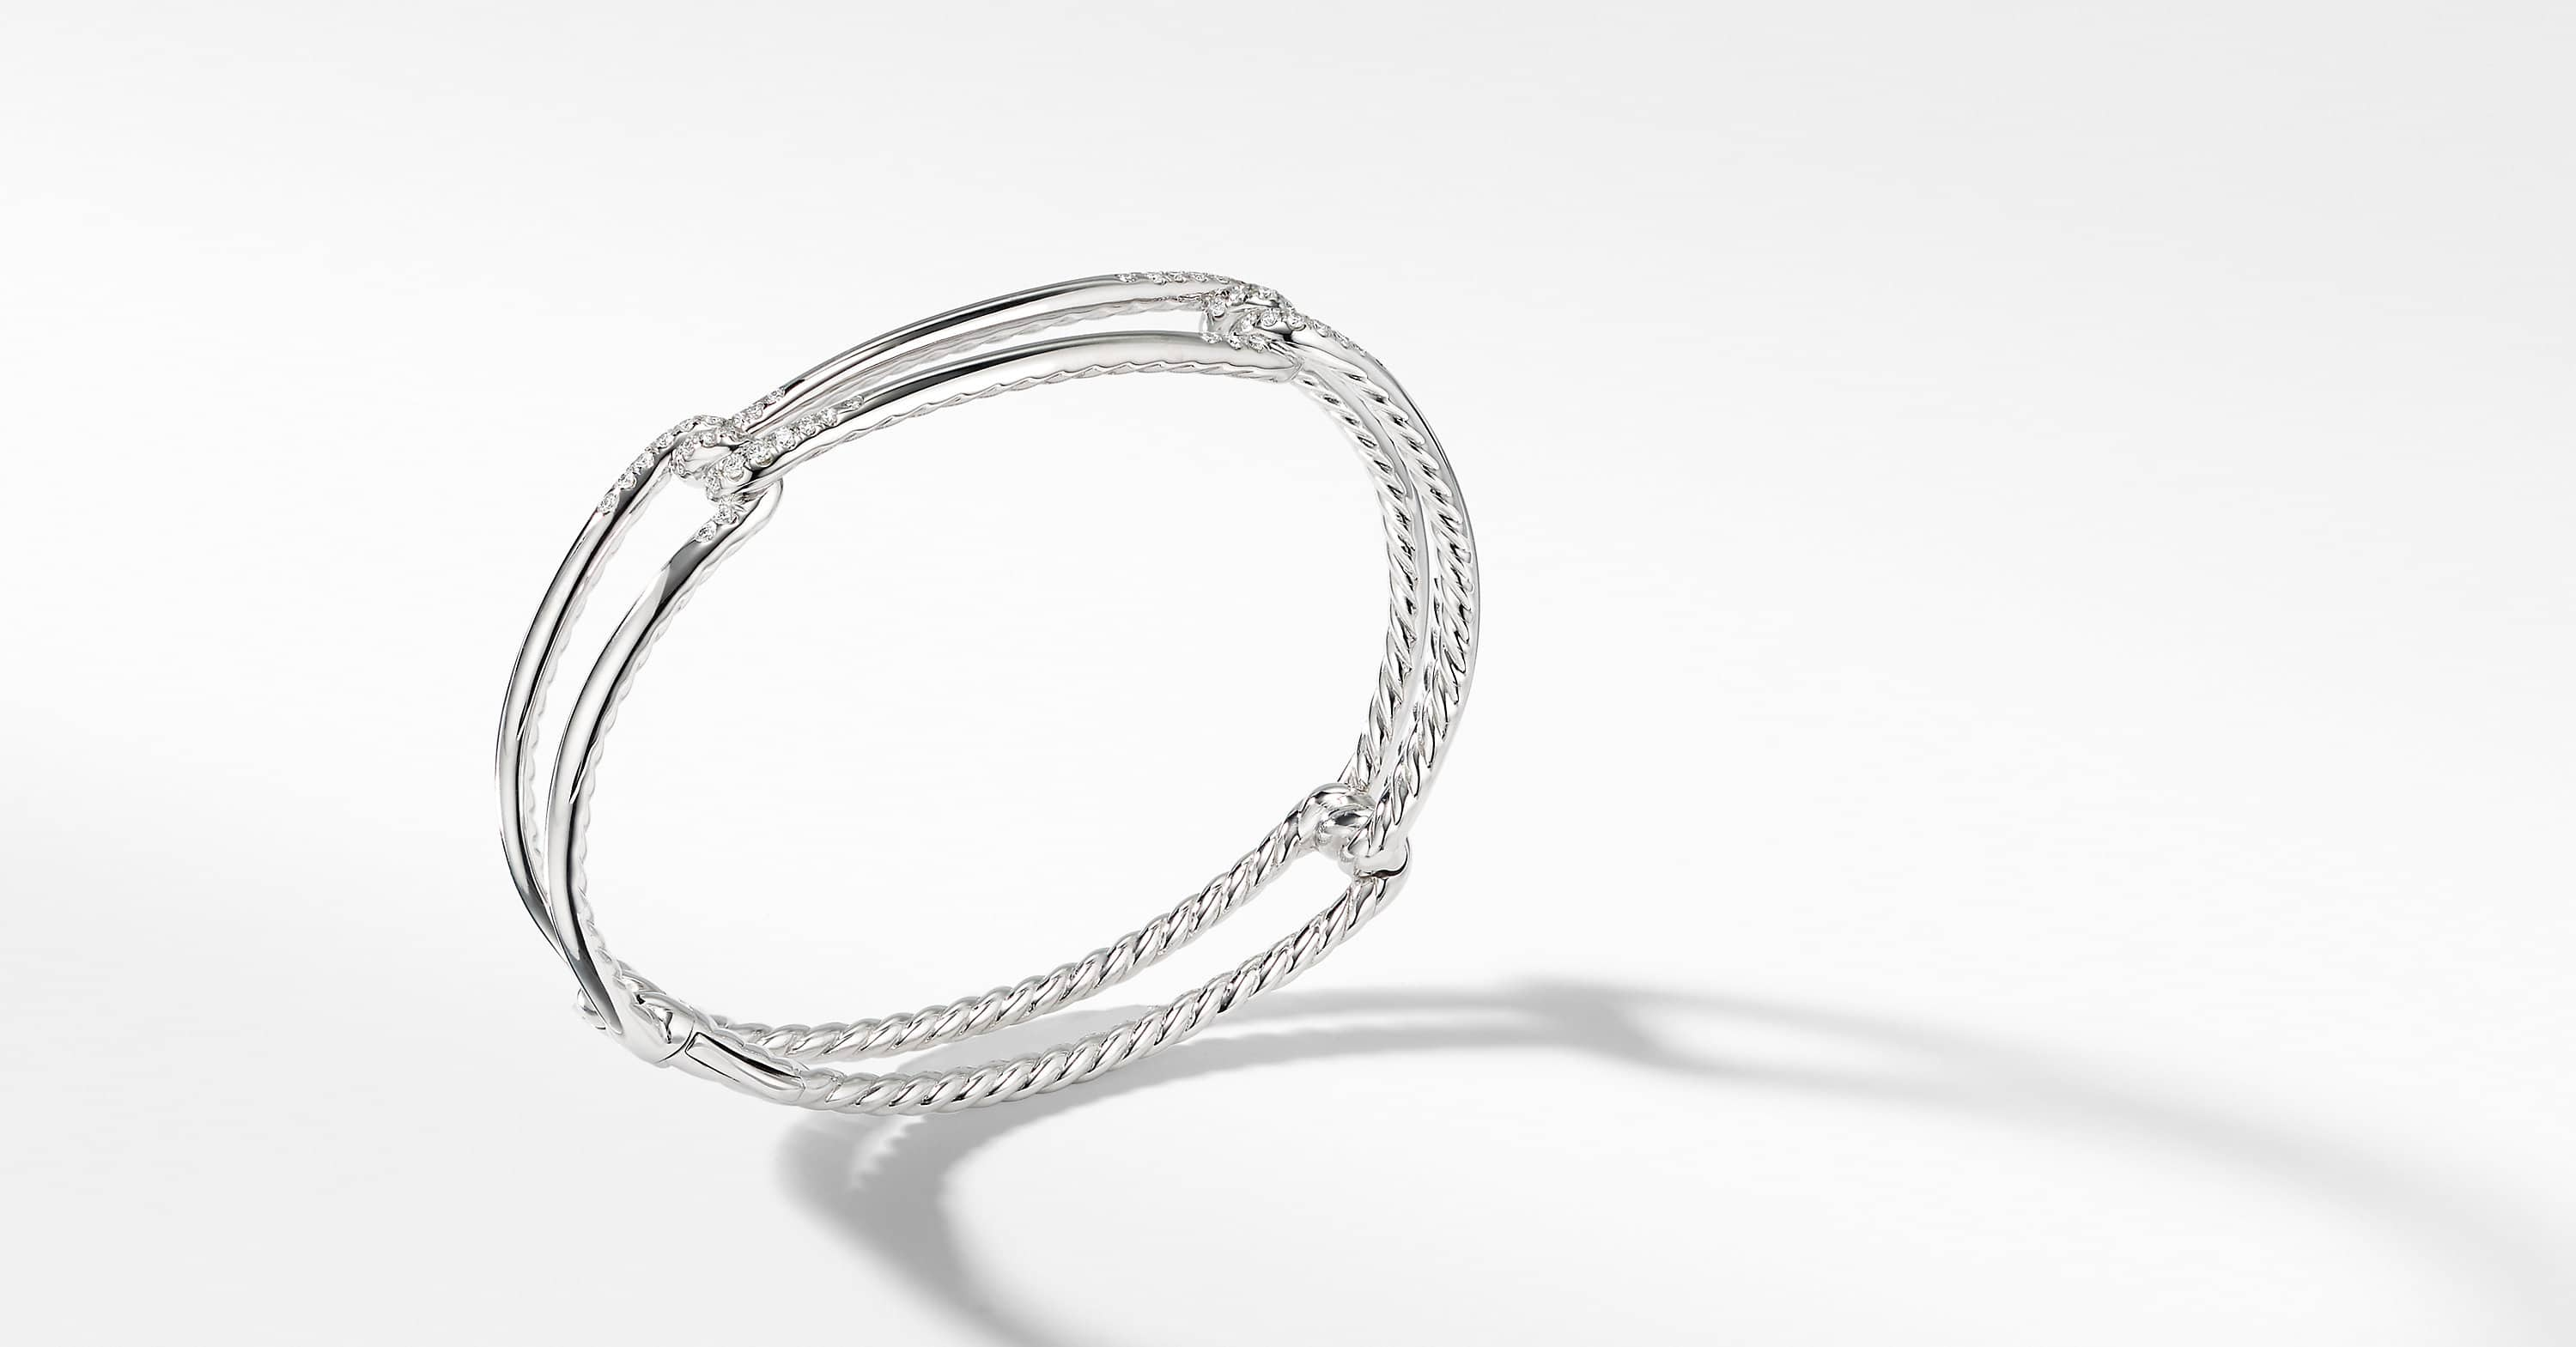 Continuance Bracelet with Diamonds in 18K White Gold